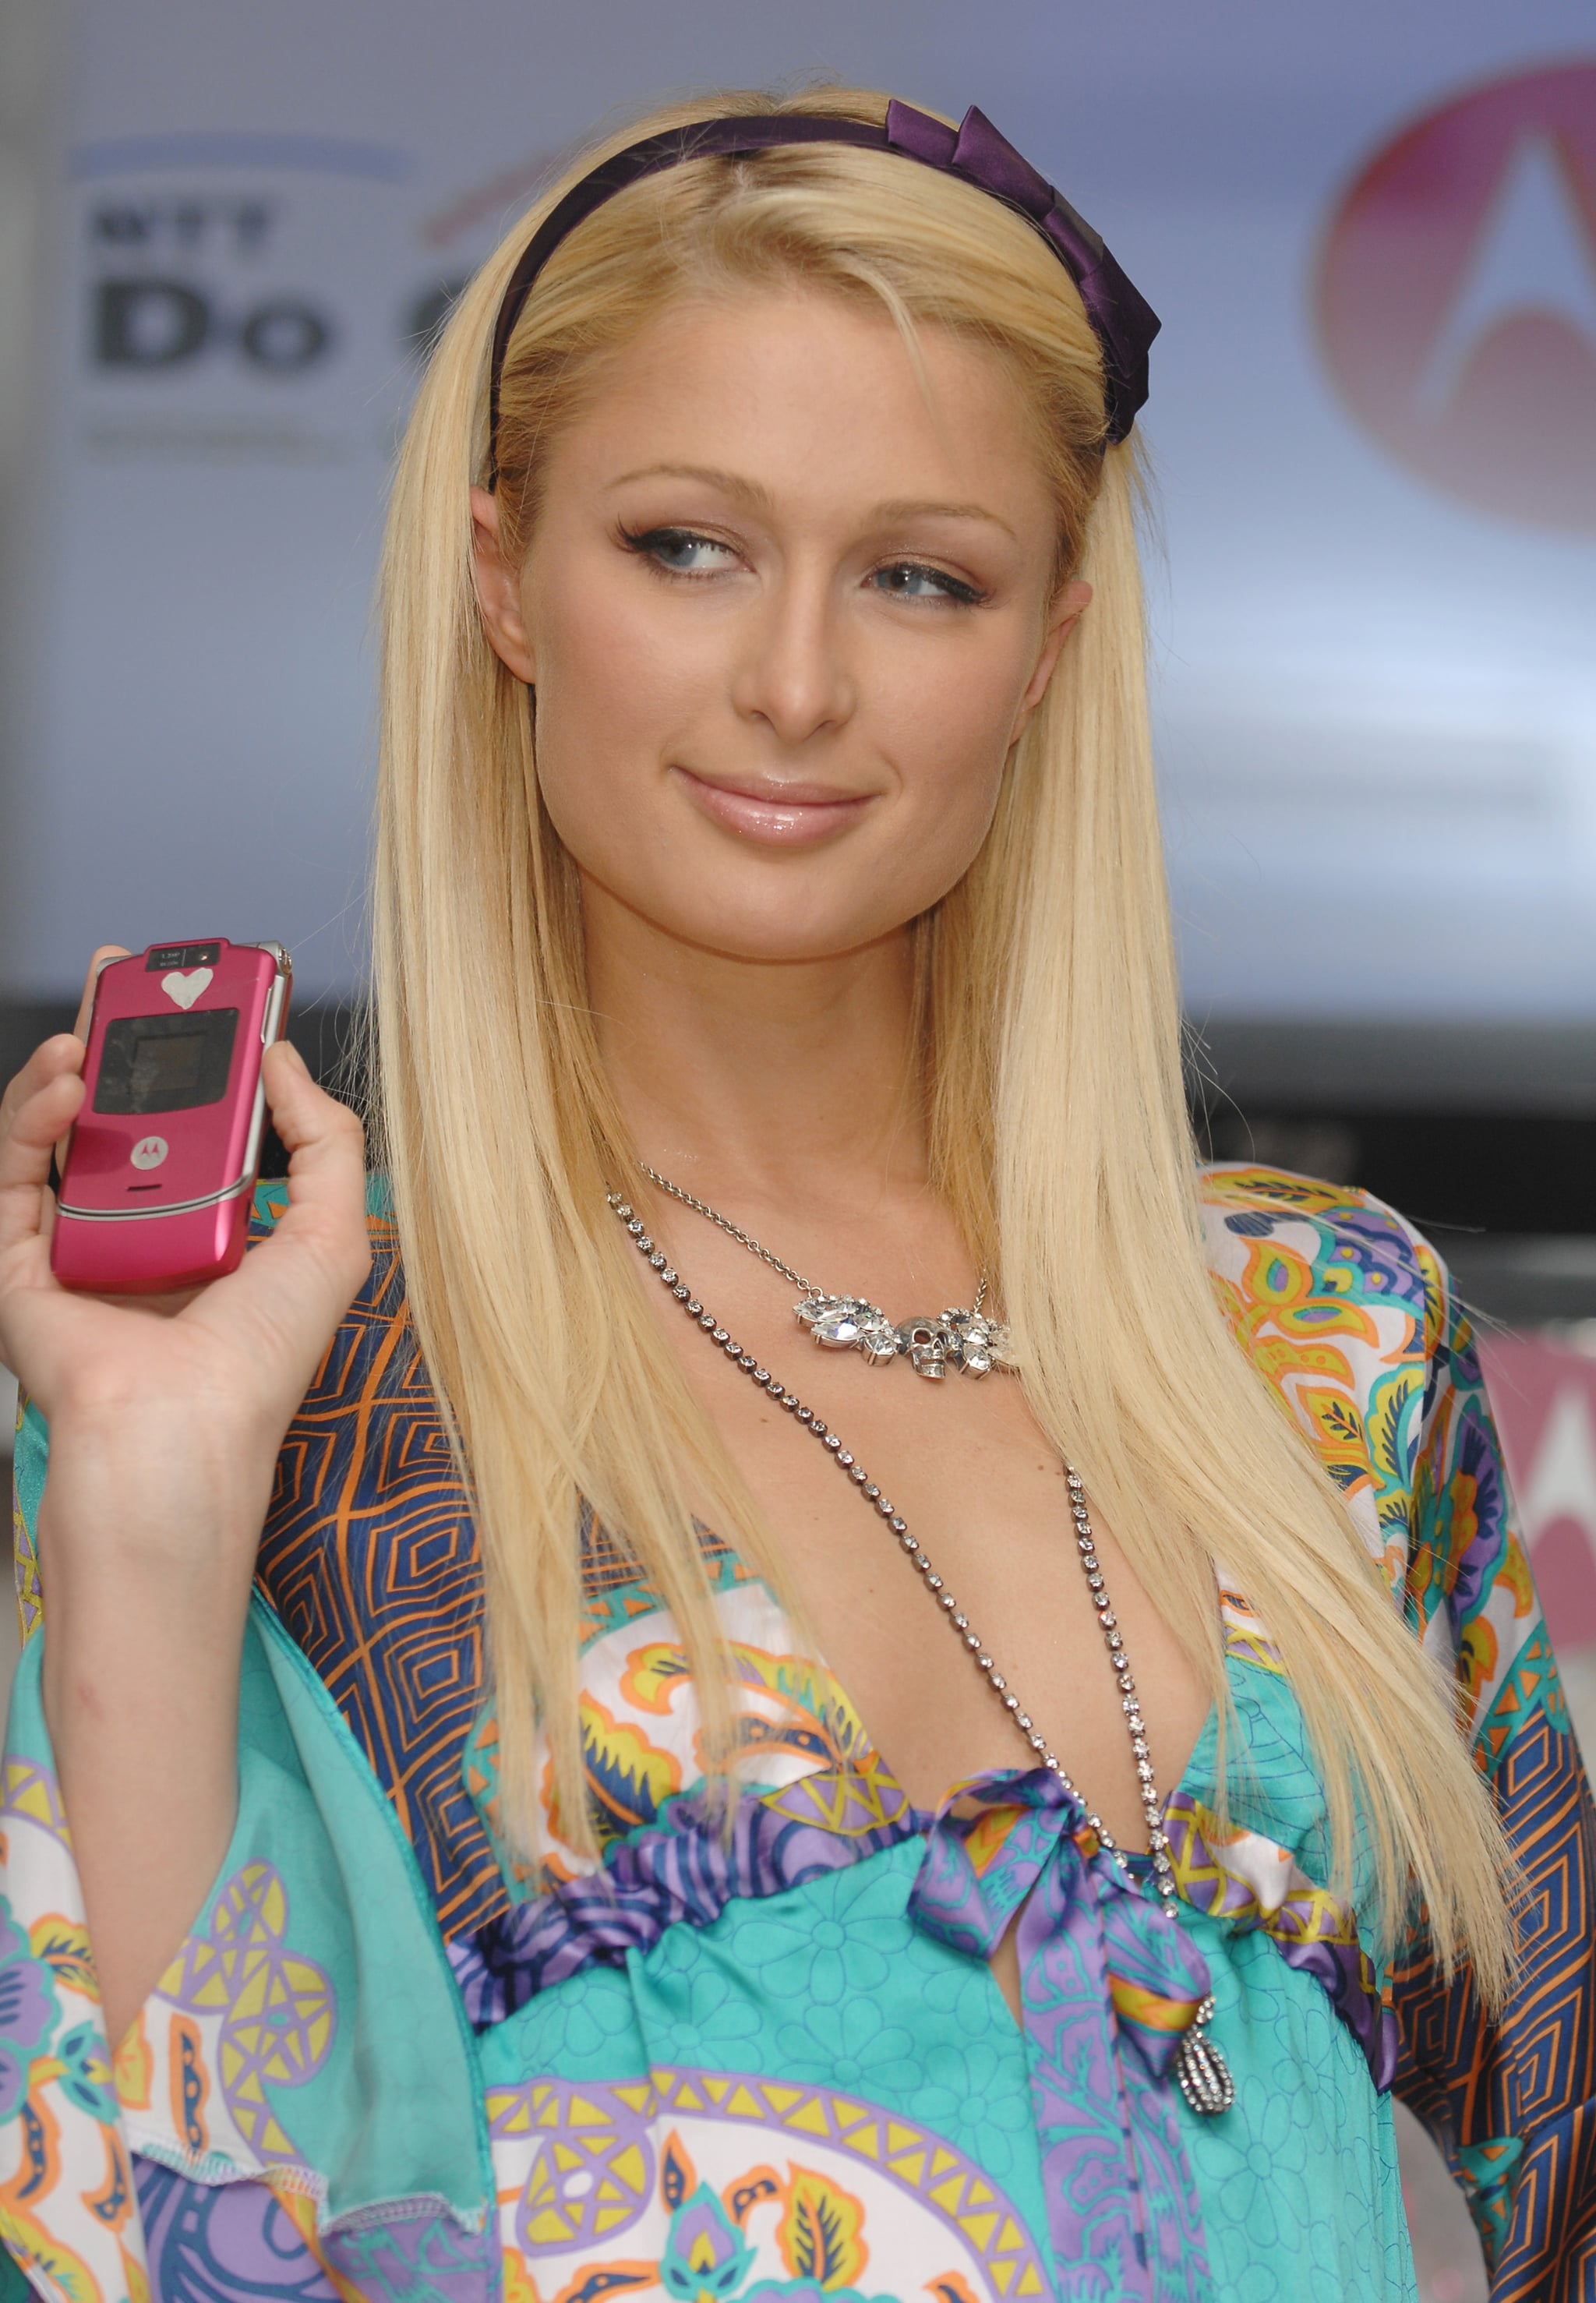 Paris Hilton during Paris Hilton Promotes the Launch of Motorola's MotoRAZR in Japan at DoCoMo Shop Shibuya at DoCoMo Shop Shibuya in Tokyo, Japan. (Photo by Jun Sato/WireImage for MOTOROLA)